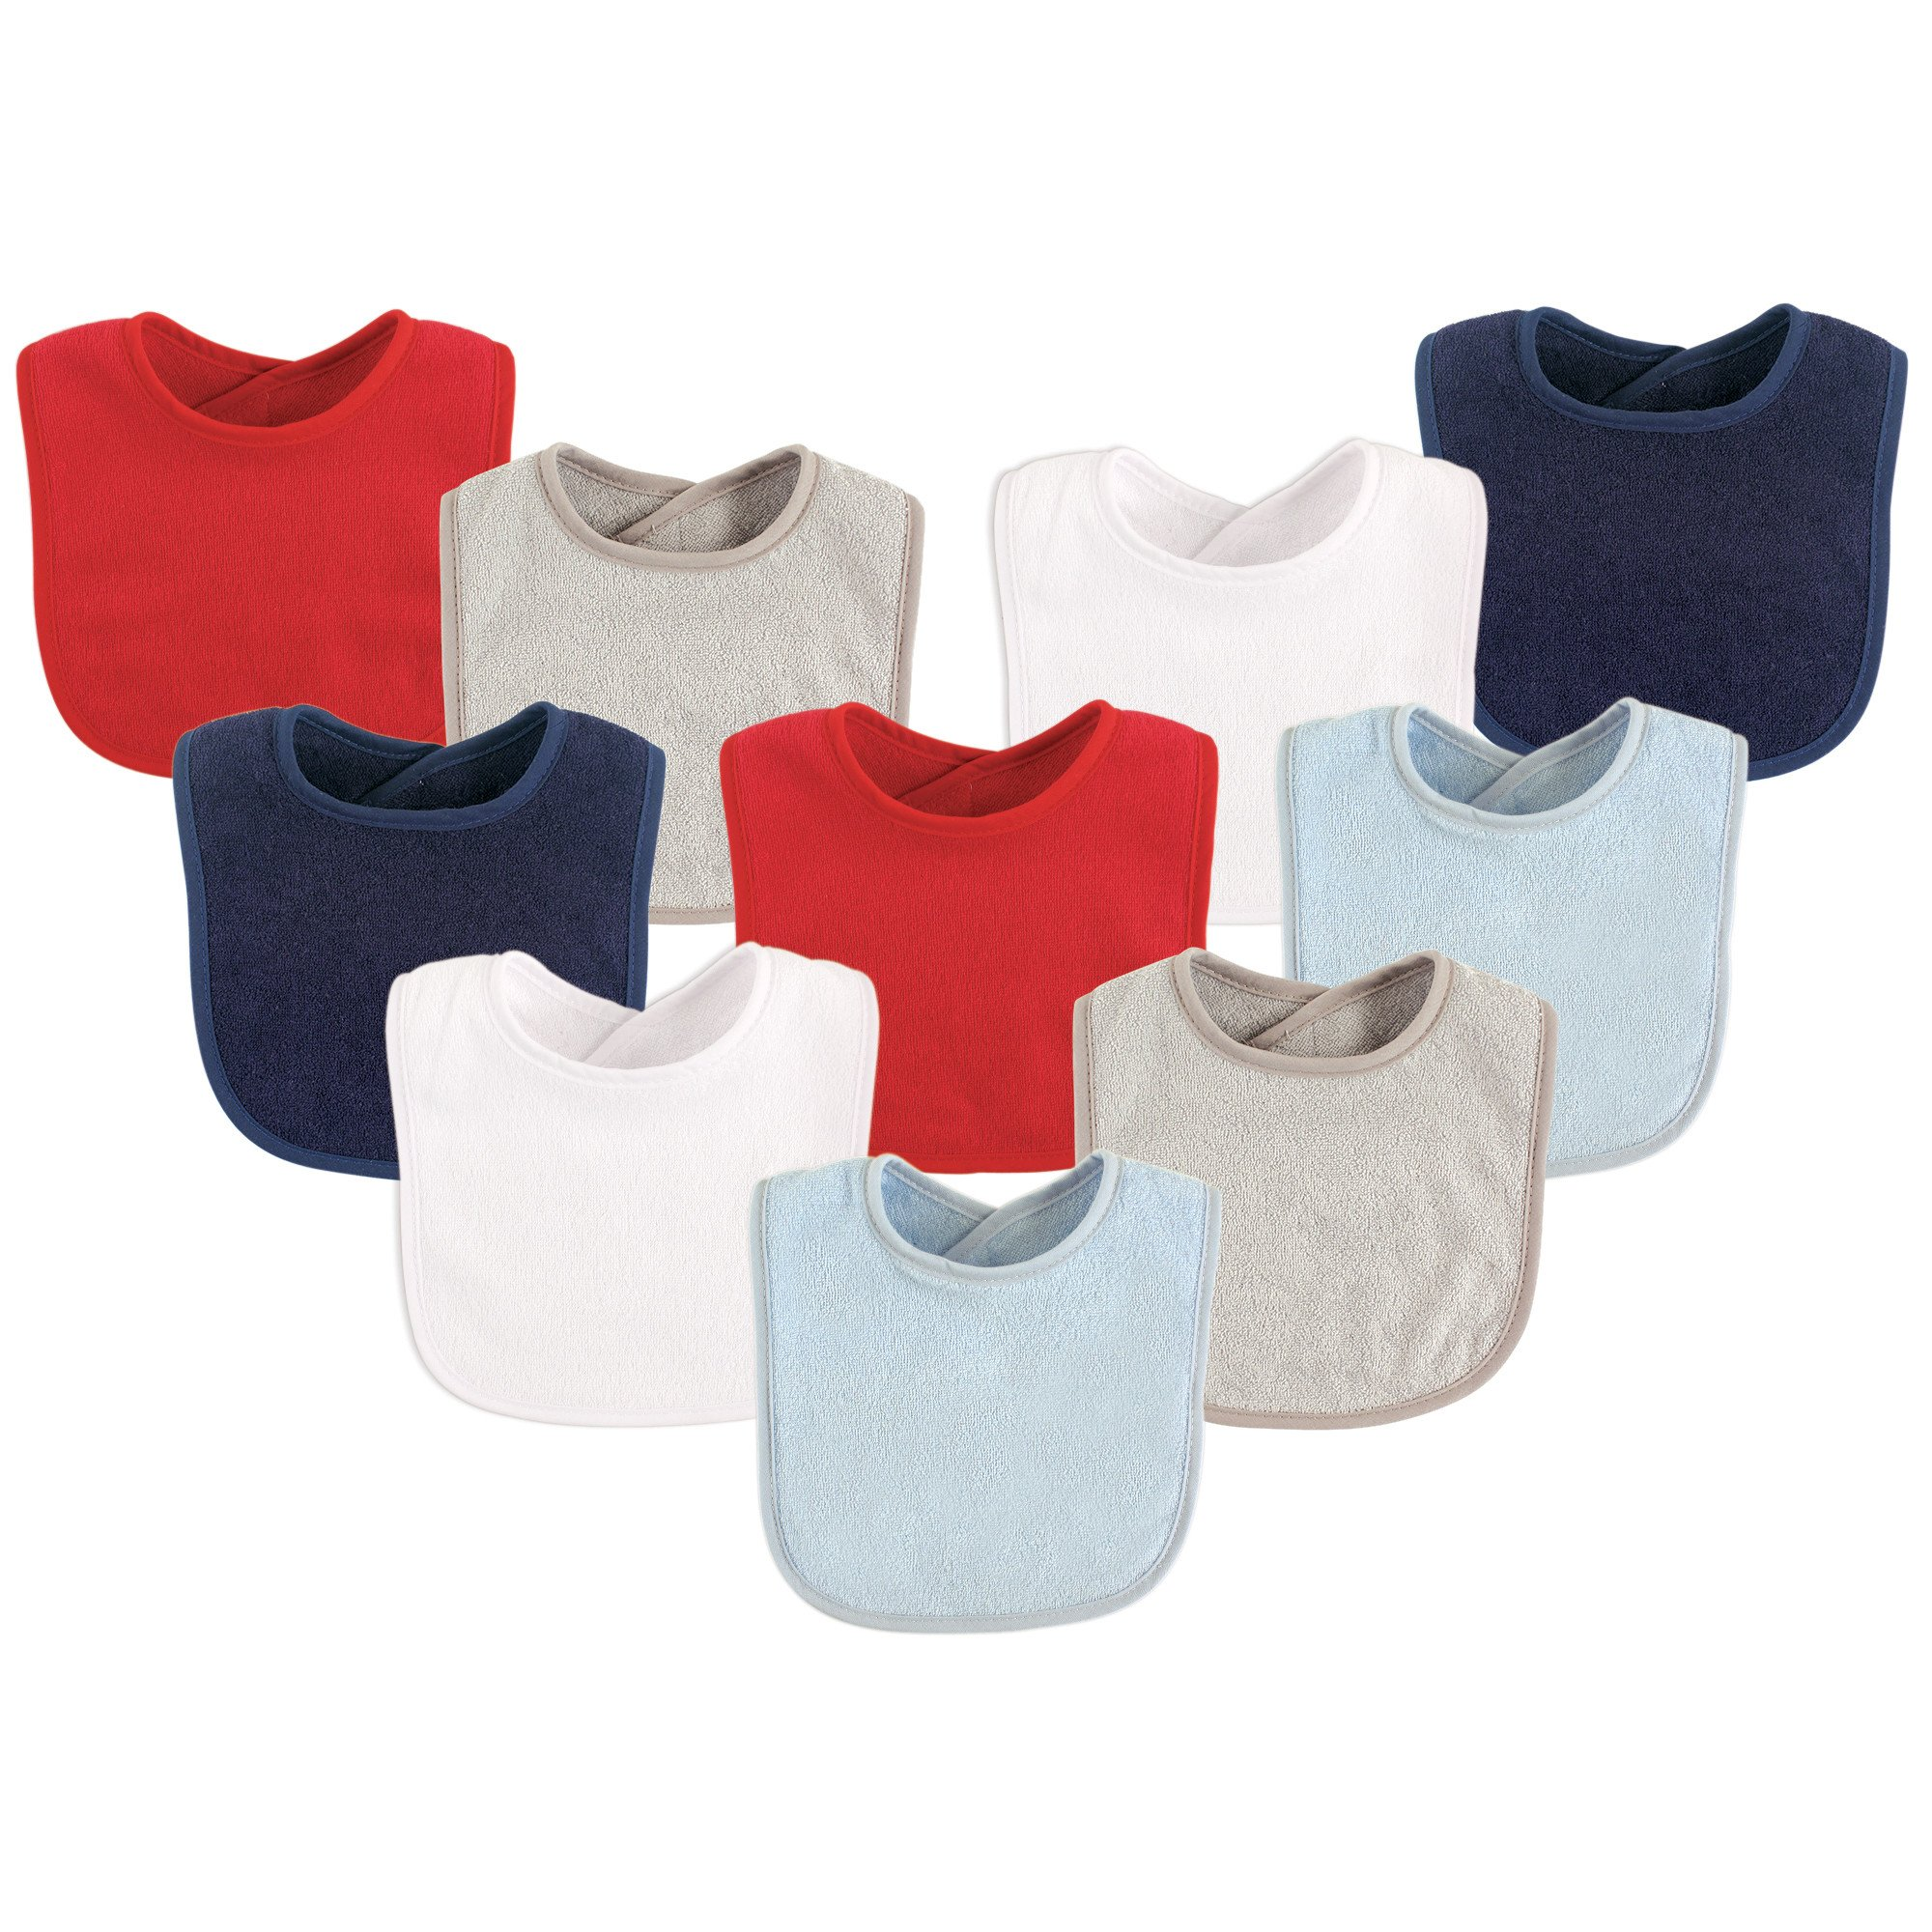 Luvable Friends Unisex Baby Drooler Bibs, Boy Red/Solid 10-Pack, One Size by Luvable Friends